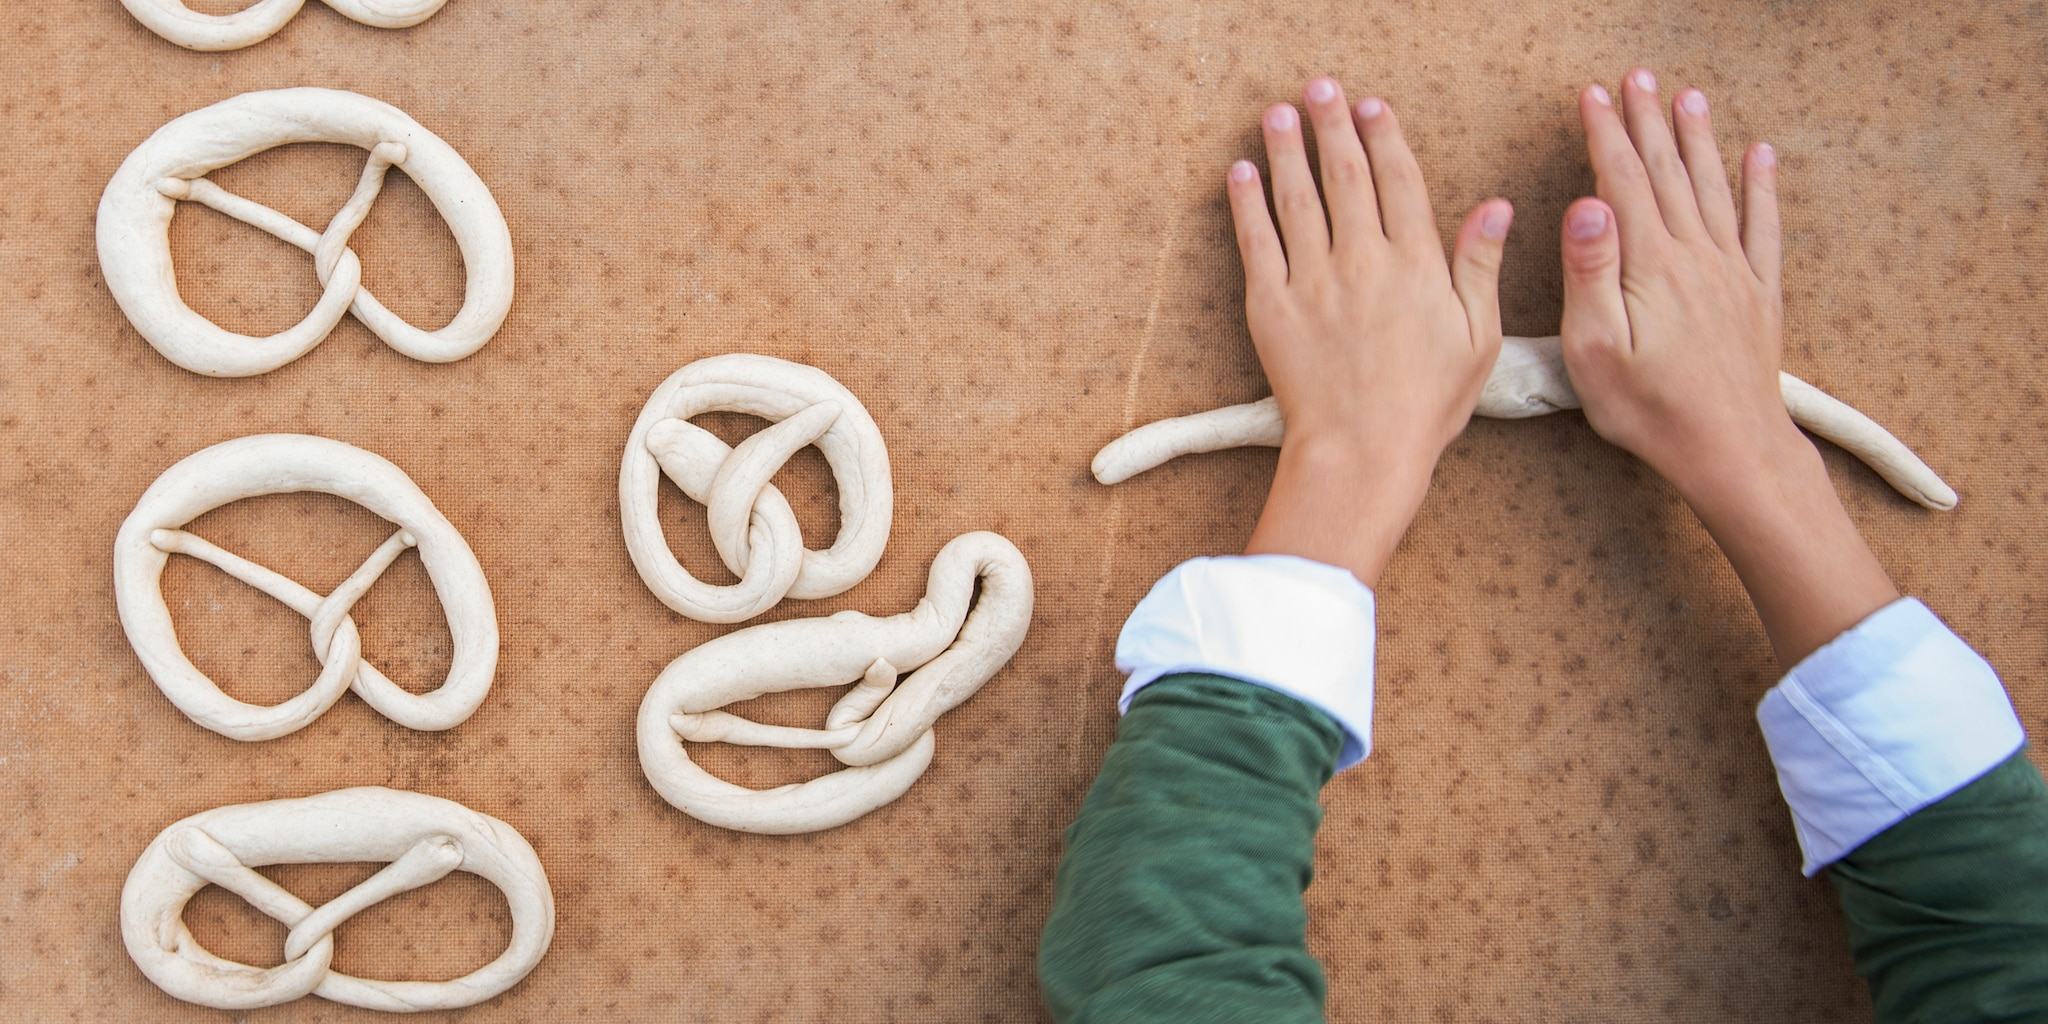 A pair of hands with rolled sleeves rolls out dough next to a few dough pieces twisted into pretzels